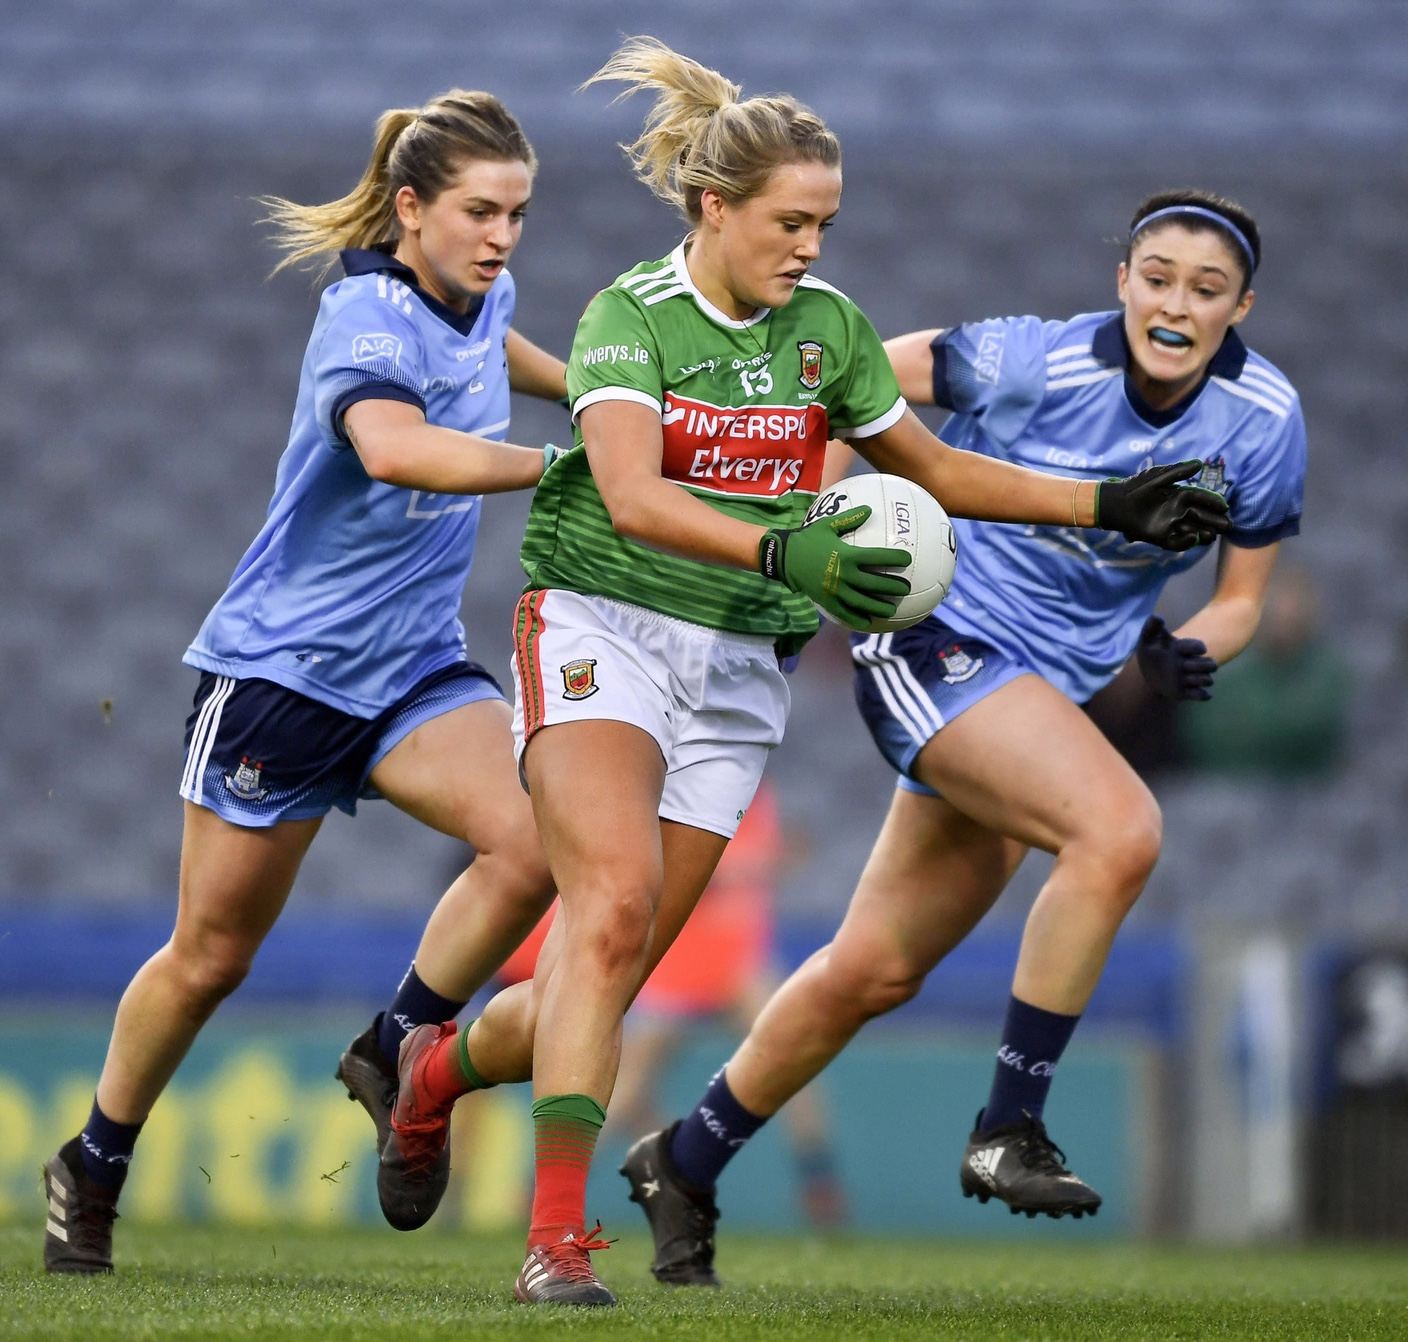 Dublin and Mayo players in action during a league game, both sides meet again this weekend in the Lidl NFL semi finals